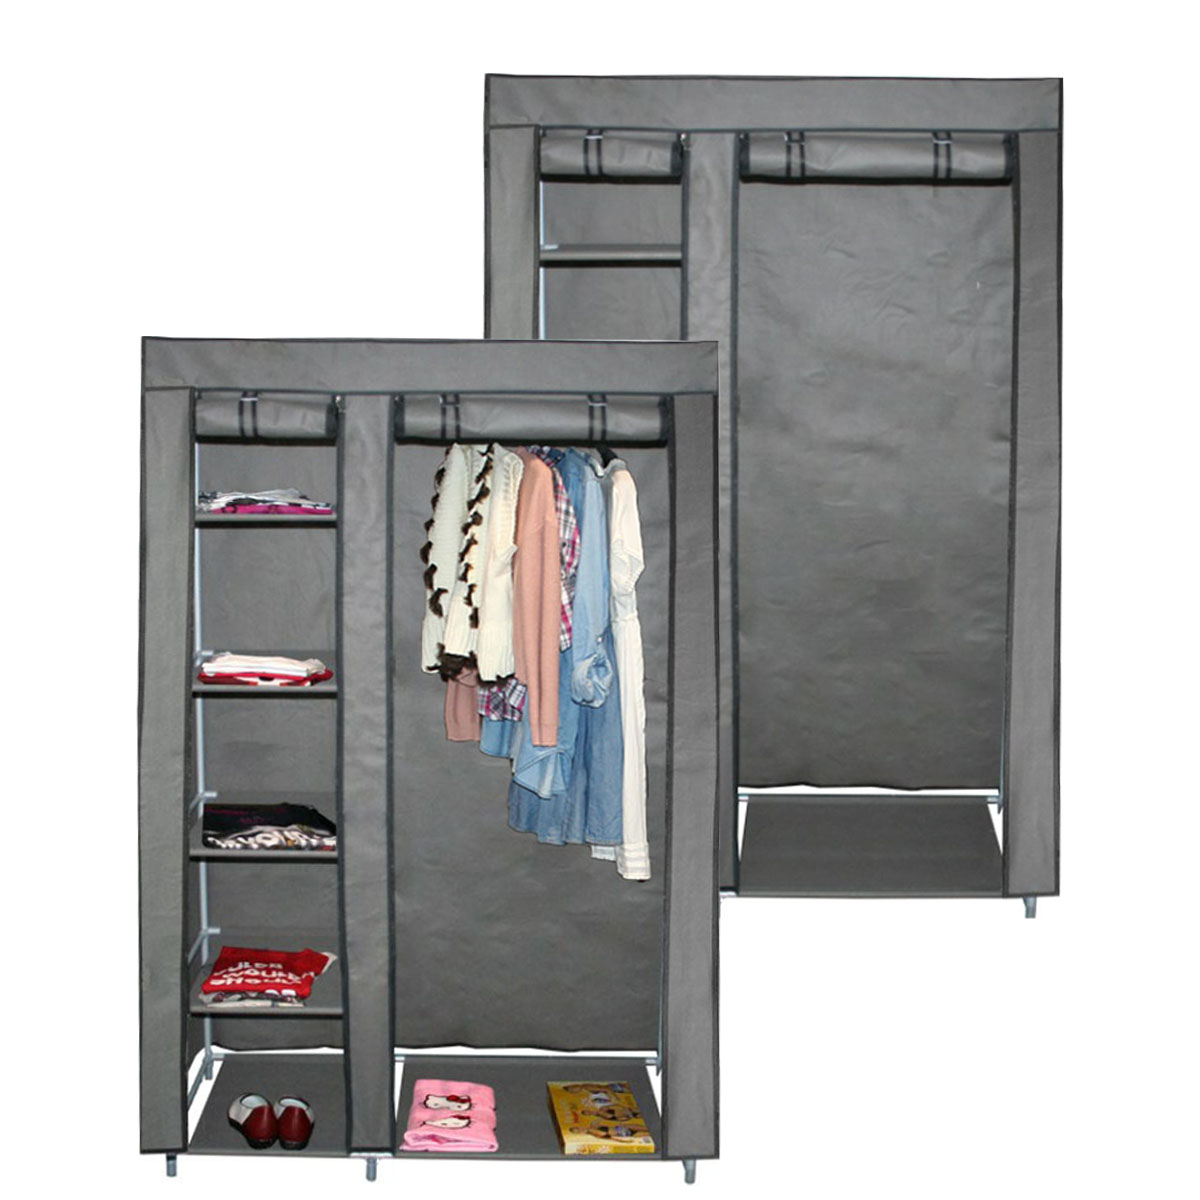 teprovo faltschrank garderobe kleiderschrank 6 b den 110 x 45 x 175 cm grau. Black Bedroom Furniture Sets. Home Design Ideas